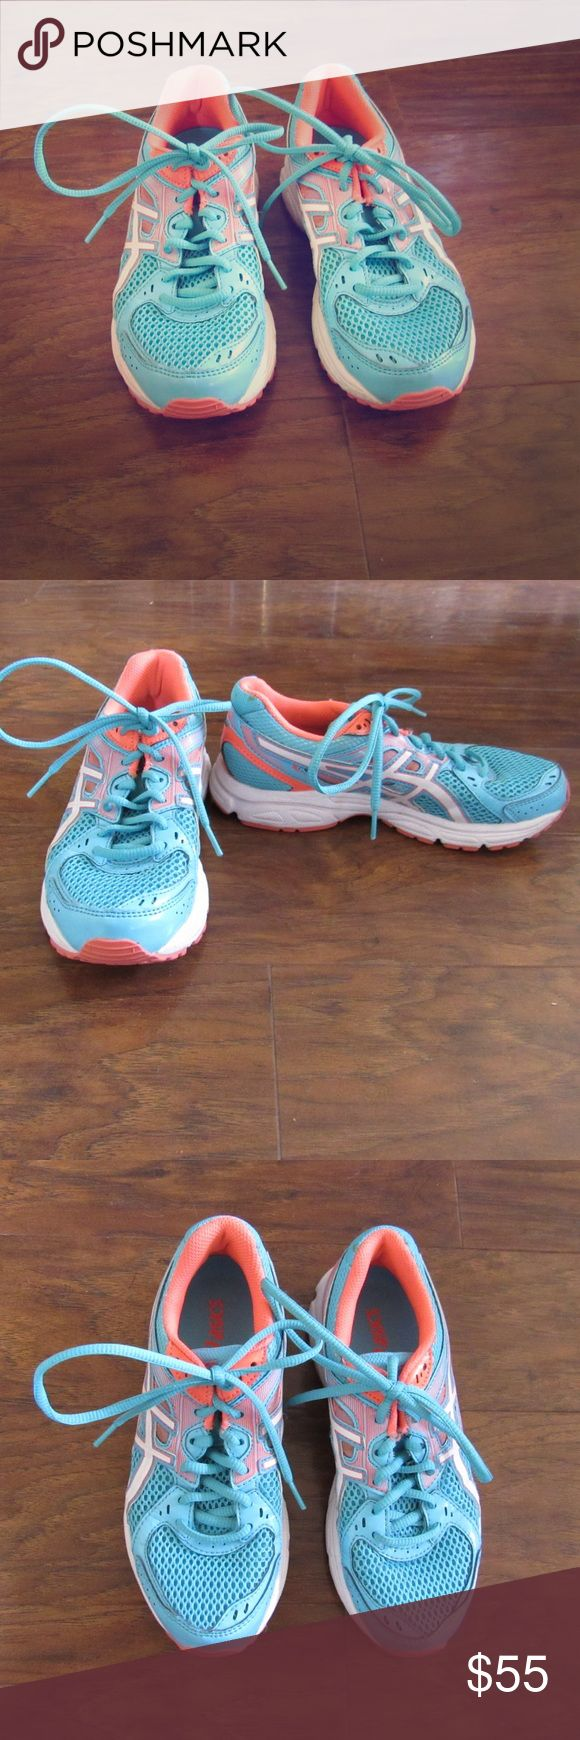 24HR SALE‼️ASICS tennis shoes! ASICS size 6 tennis shoes. Like new condition! Asics Shoes Athletic Shoes